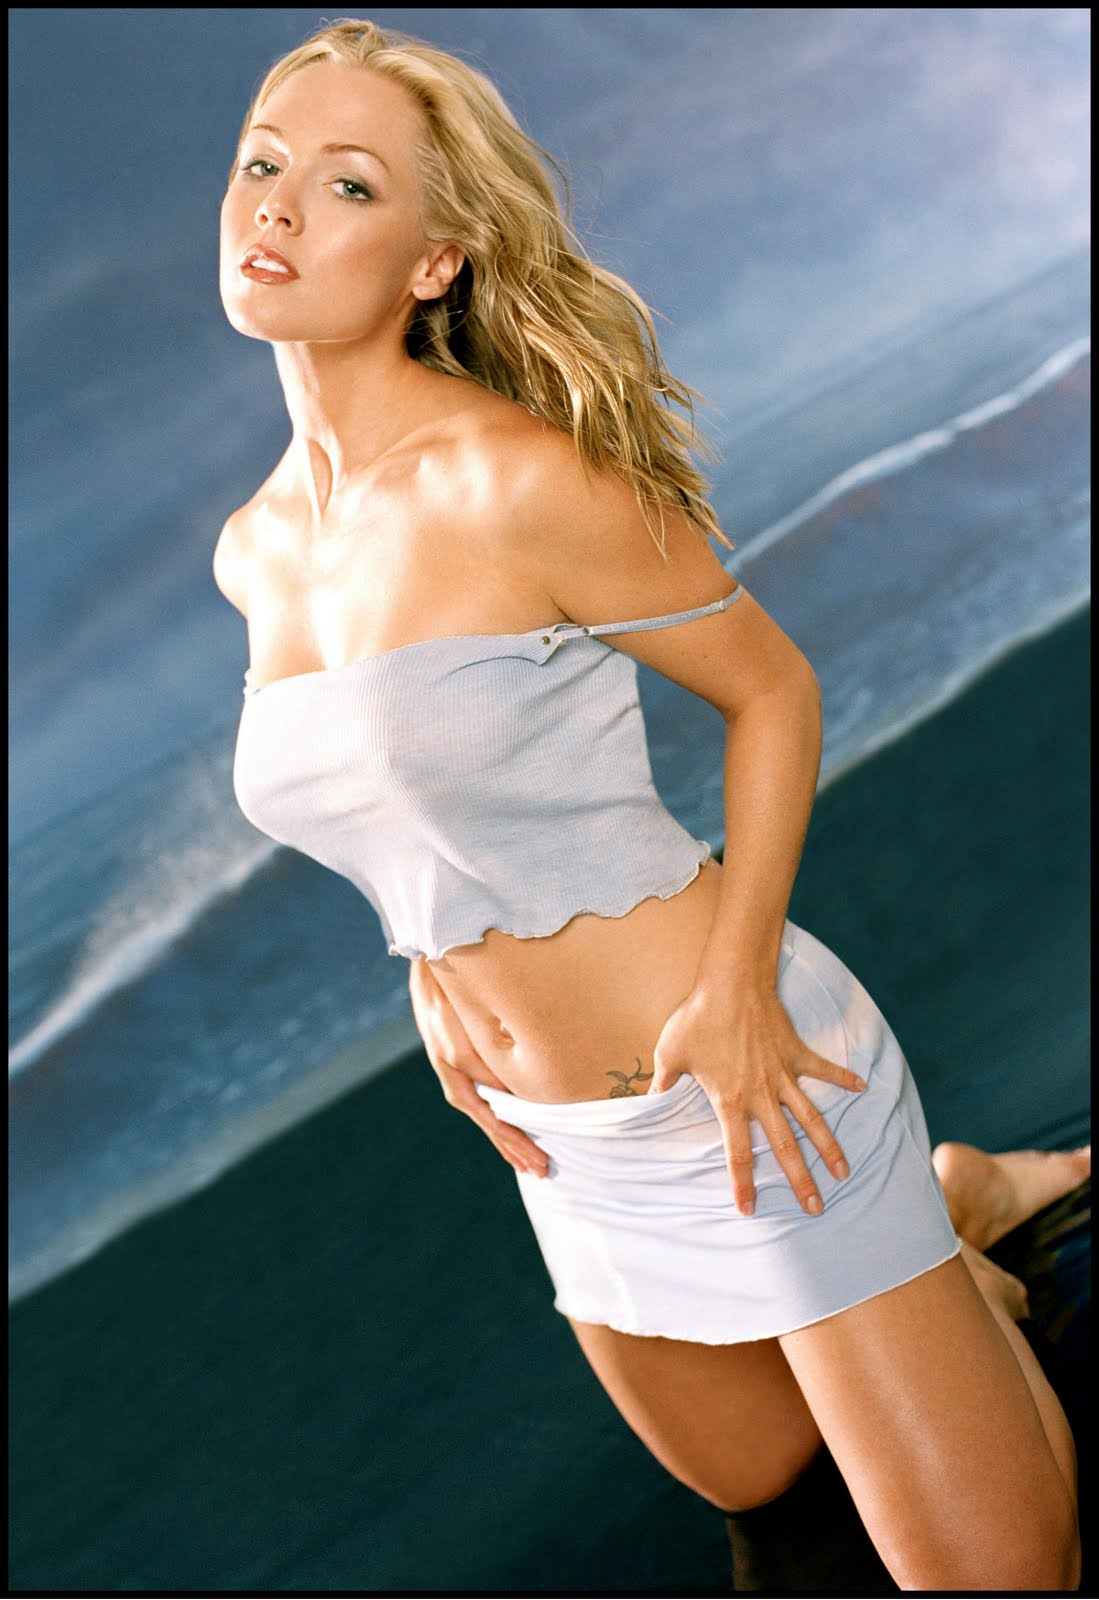 For Jennie garth real naked consider, that